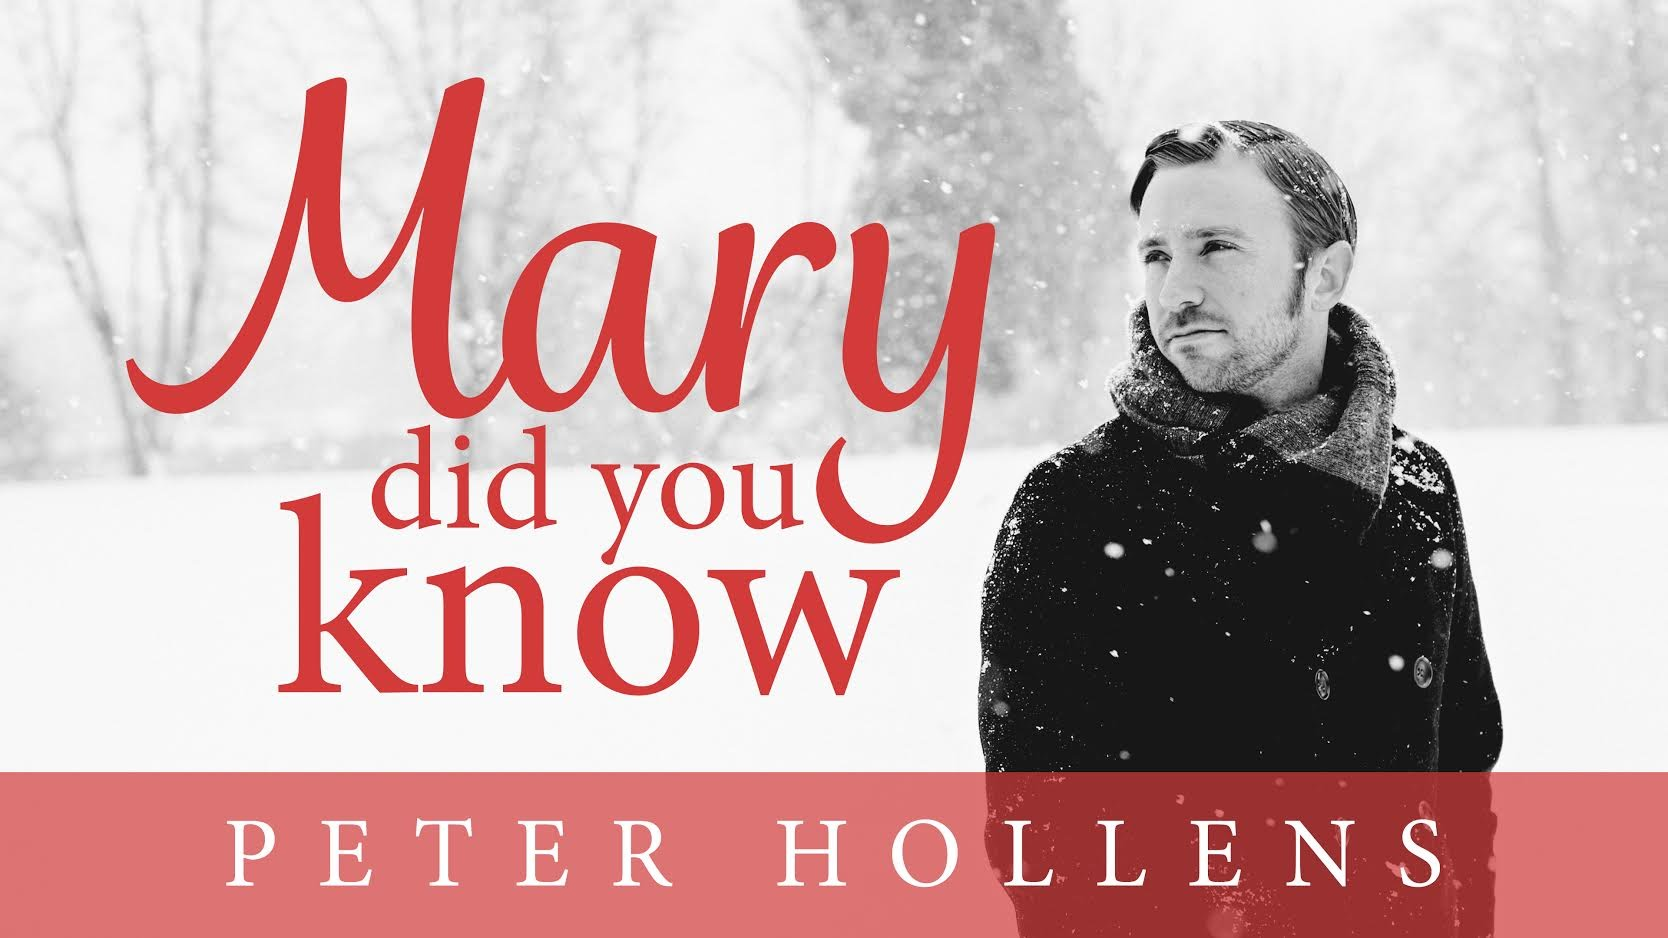 Peter Hollens' Soaring Version of Mary Did You Know - My Merry ...